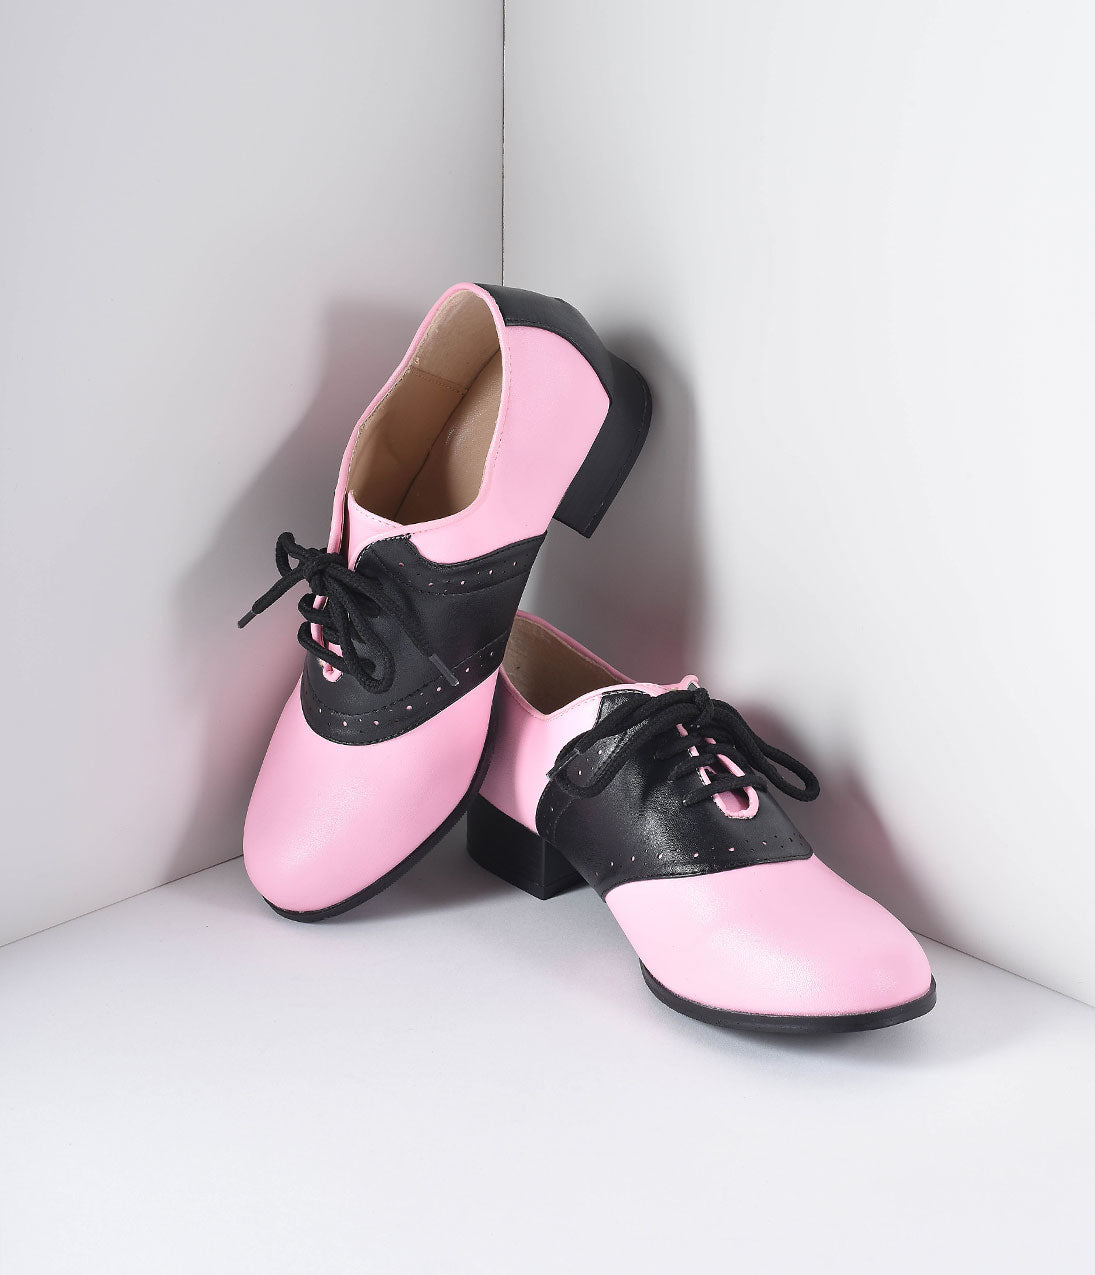 1950s Shoe Styles: Heels, Flats, Sandals, Saddles Shoes Retro Style Pink  Black Two Tone Saddle Shoes $42.00 AT vintagedancer.com